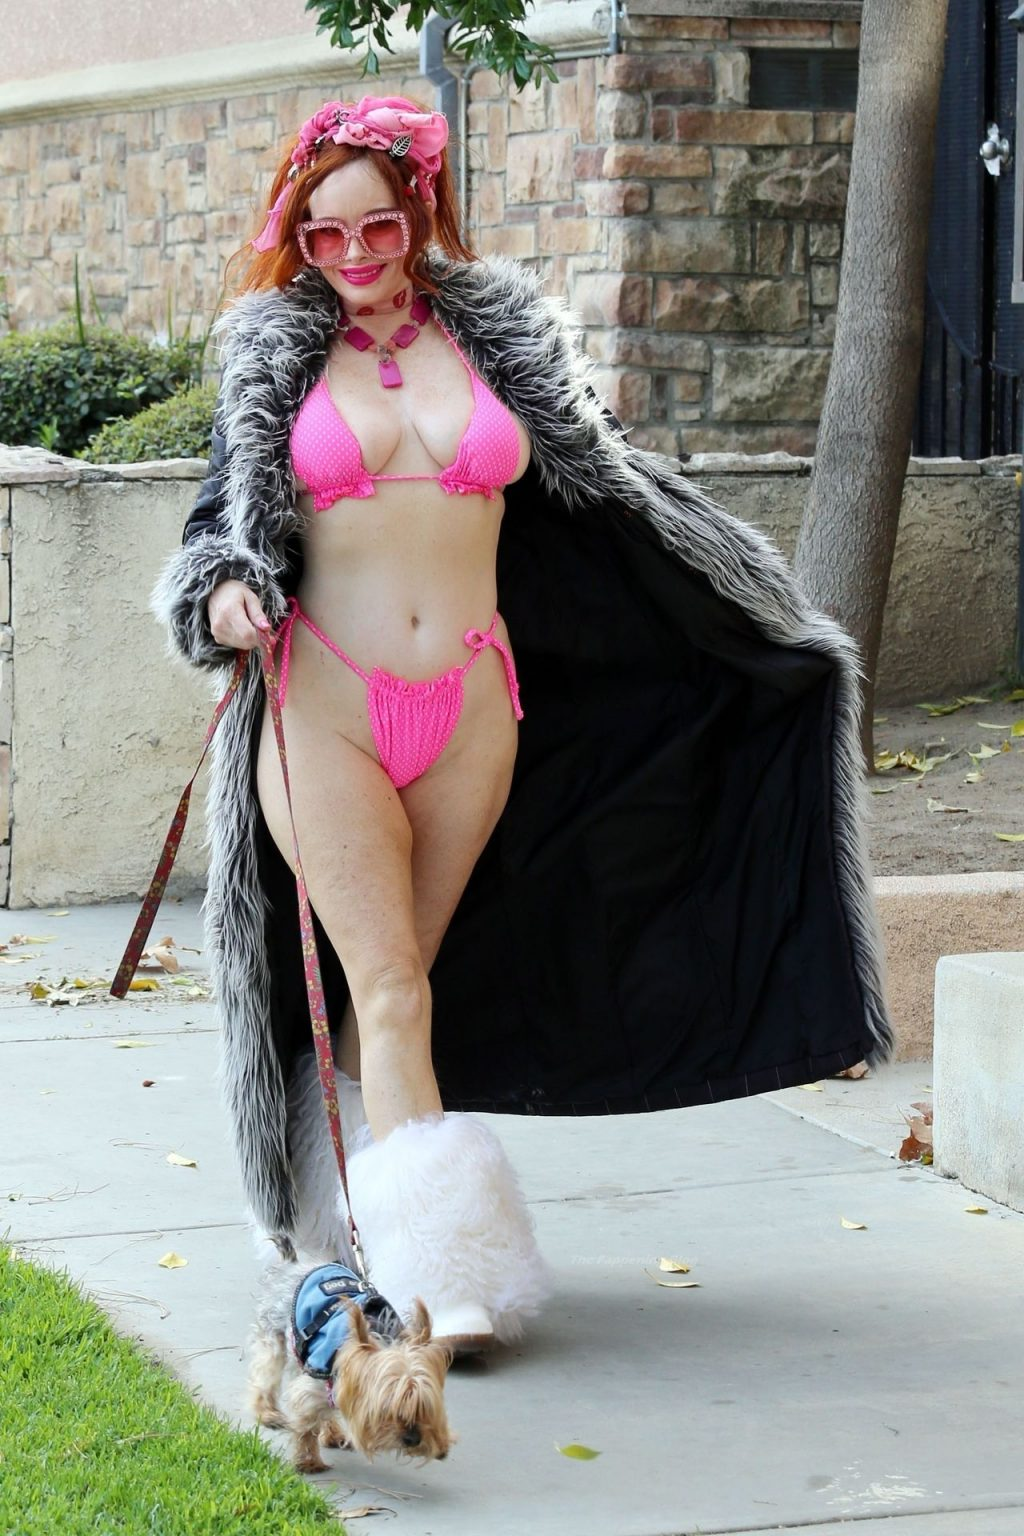 Phoebe Price Shows Off Her Curves in a Pink Bikini (42 Photos)